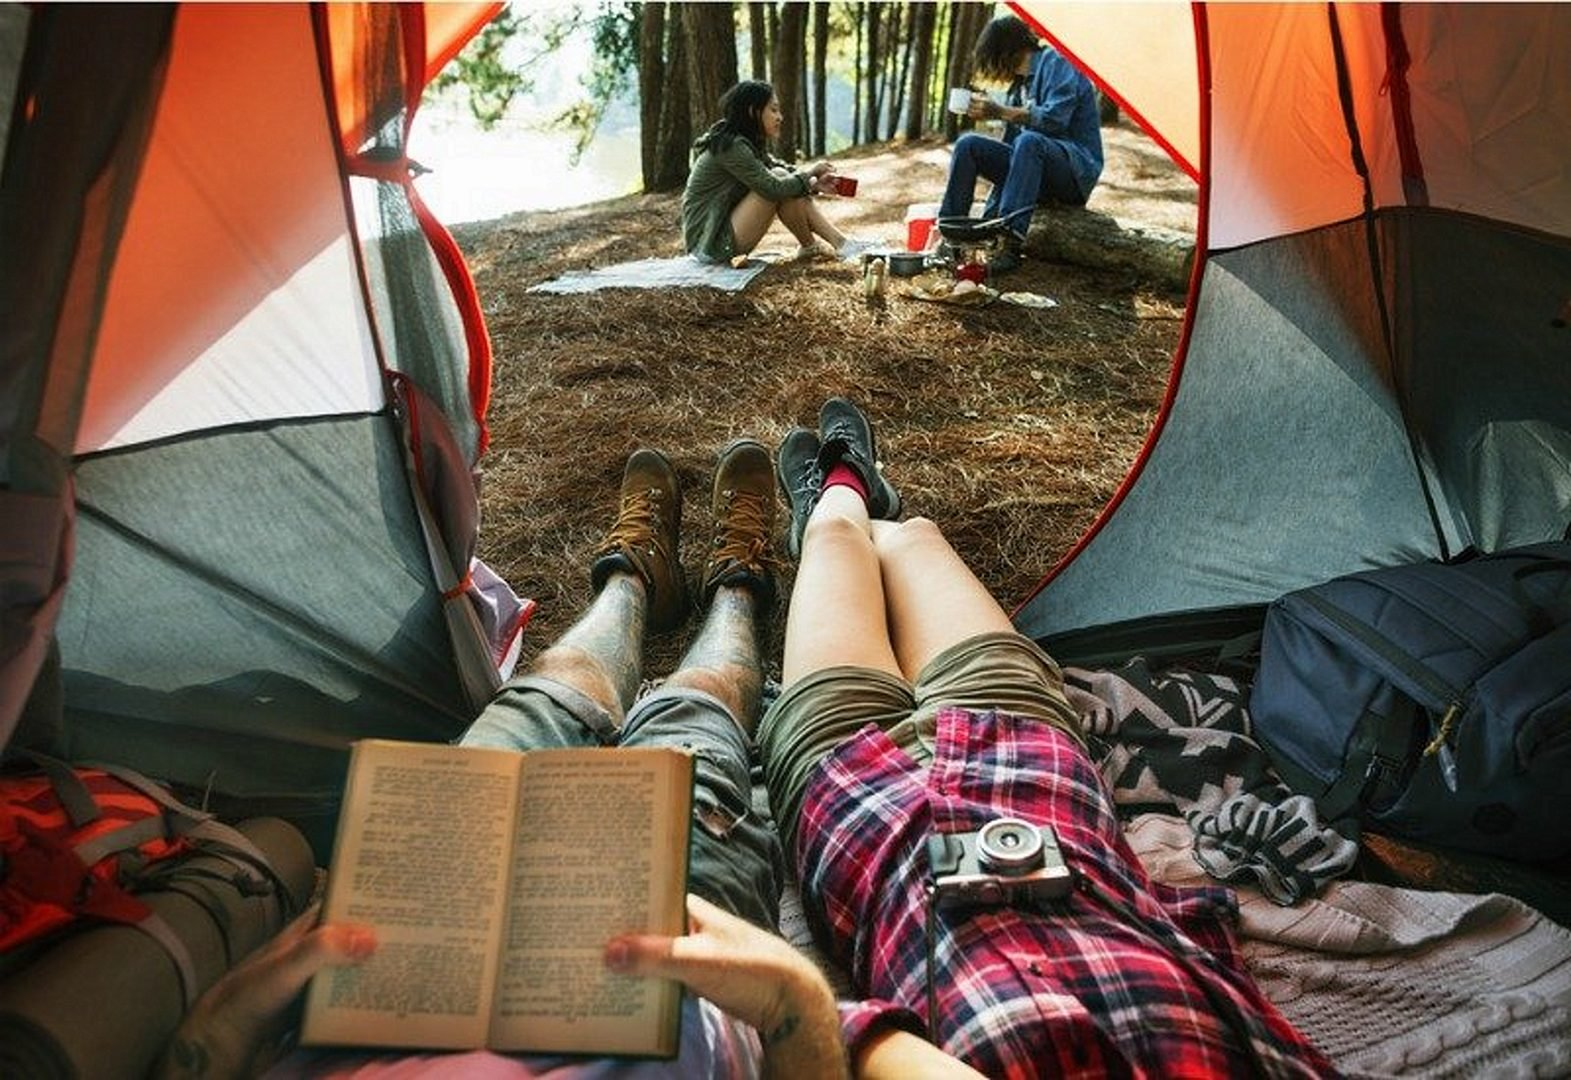 Reading book in a tent when camping